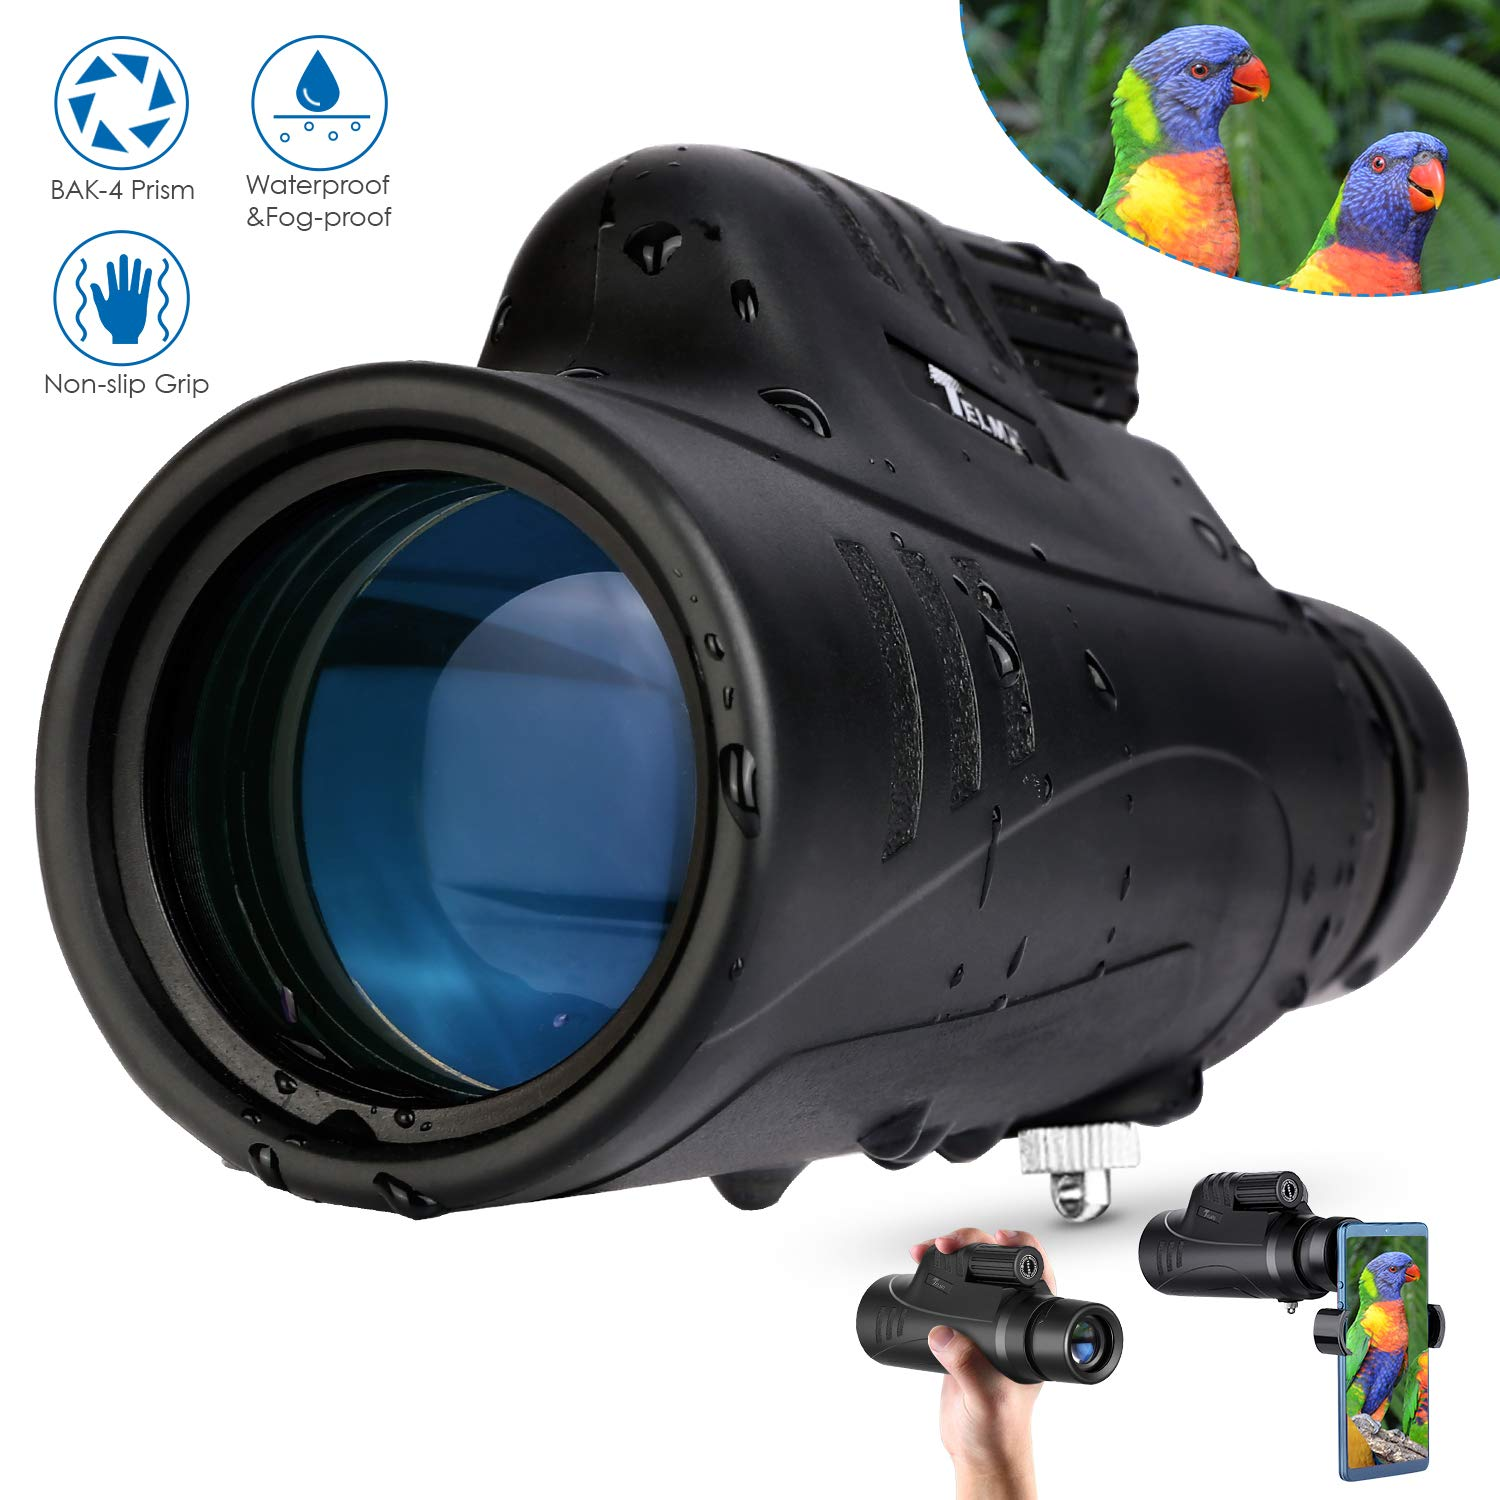 TELMU Monocular Telescope 10X42 with BAK-4 Prism and FMC Objective Lens, Waterproof for Bird Watching and Match Viewing, Ideal Monocular for Nature Explorer and Outdoor Adventurer by TELMU